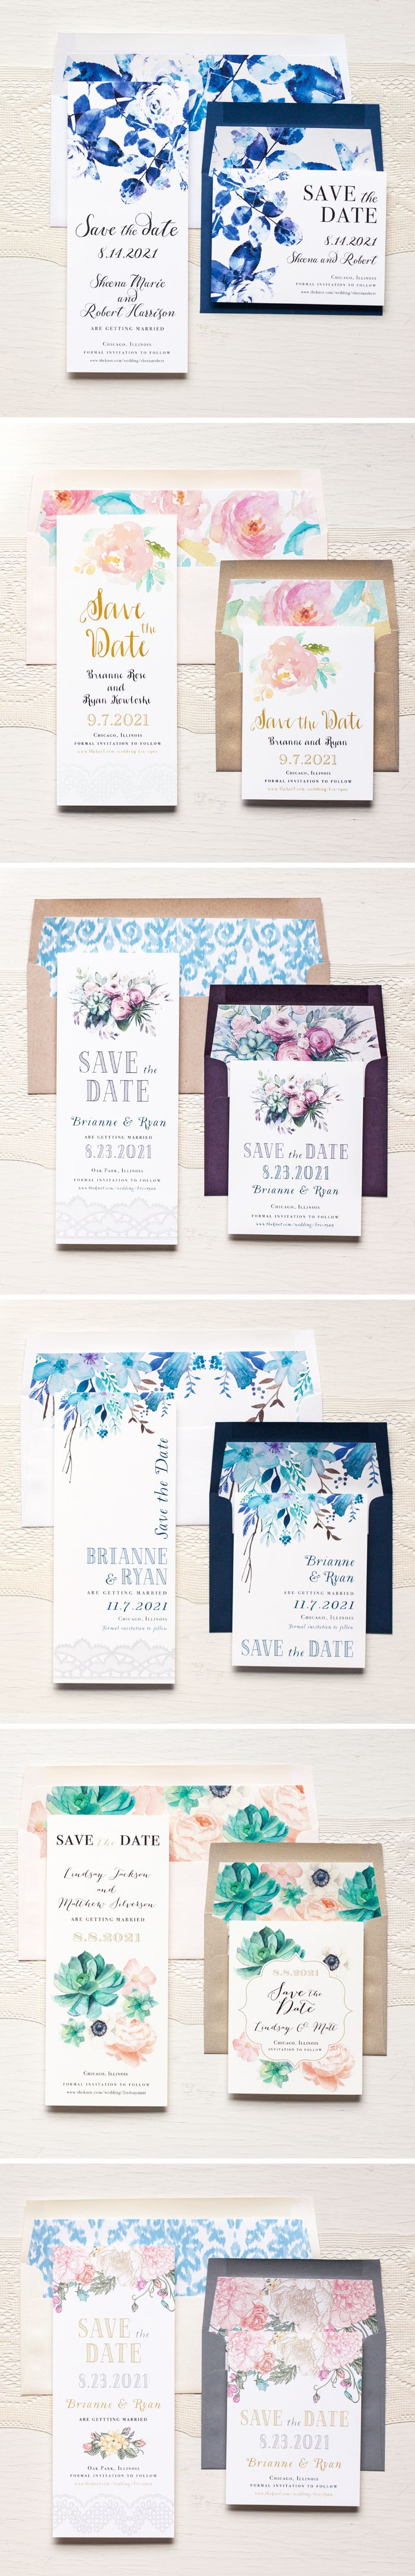 best Wedding images on Pinterest  Engagements Homecoming